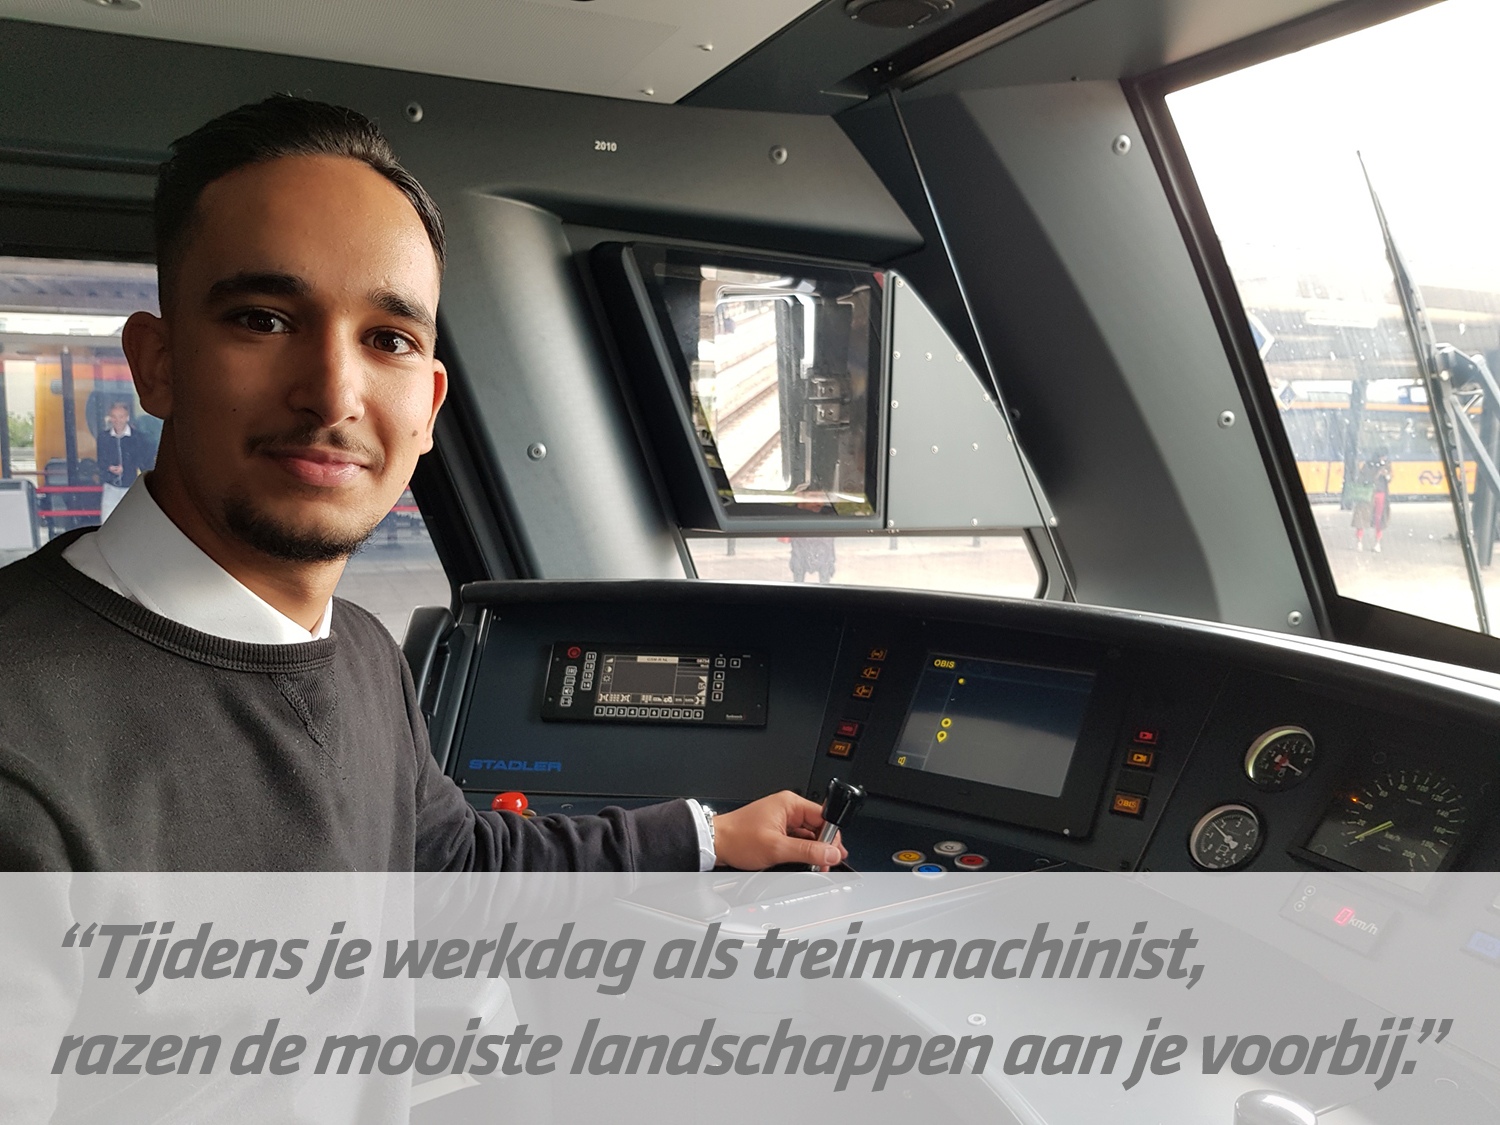 mbo-opleiding Treinmachinist | STC mbo college Rotterdam